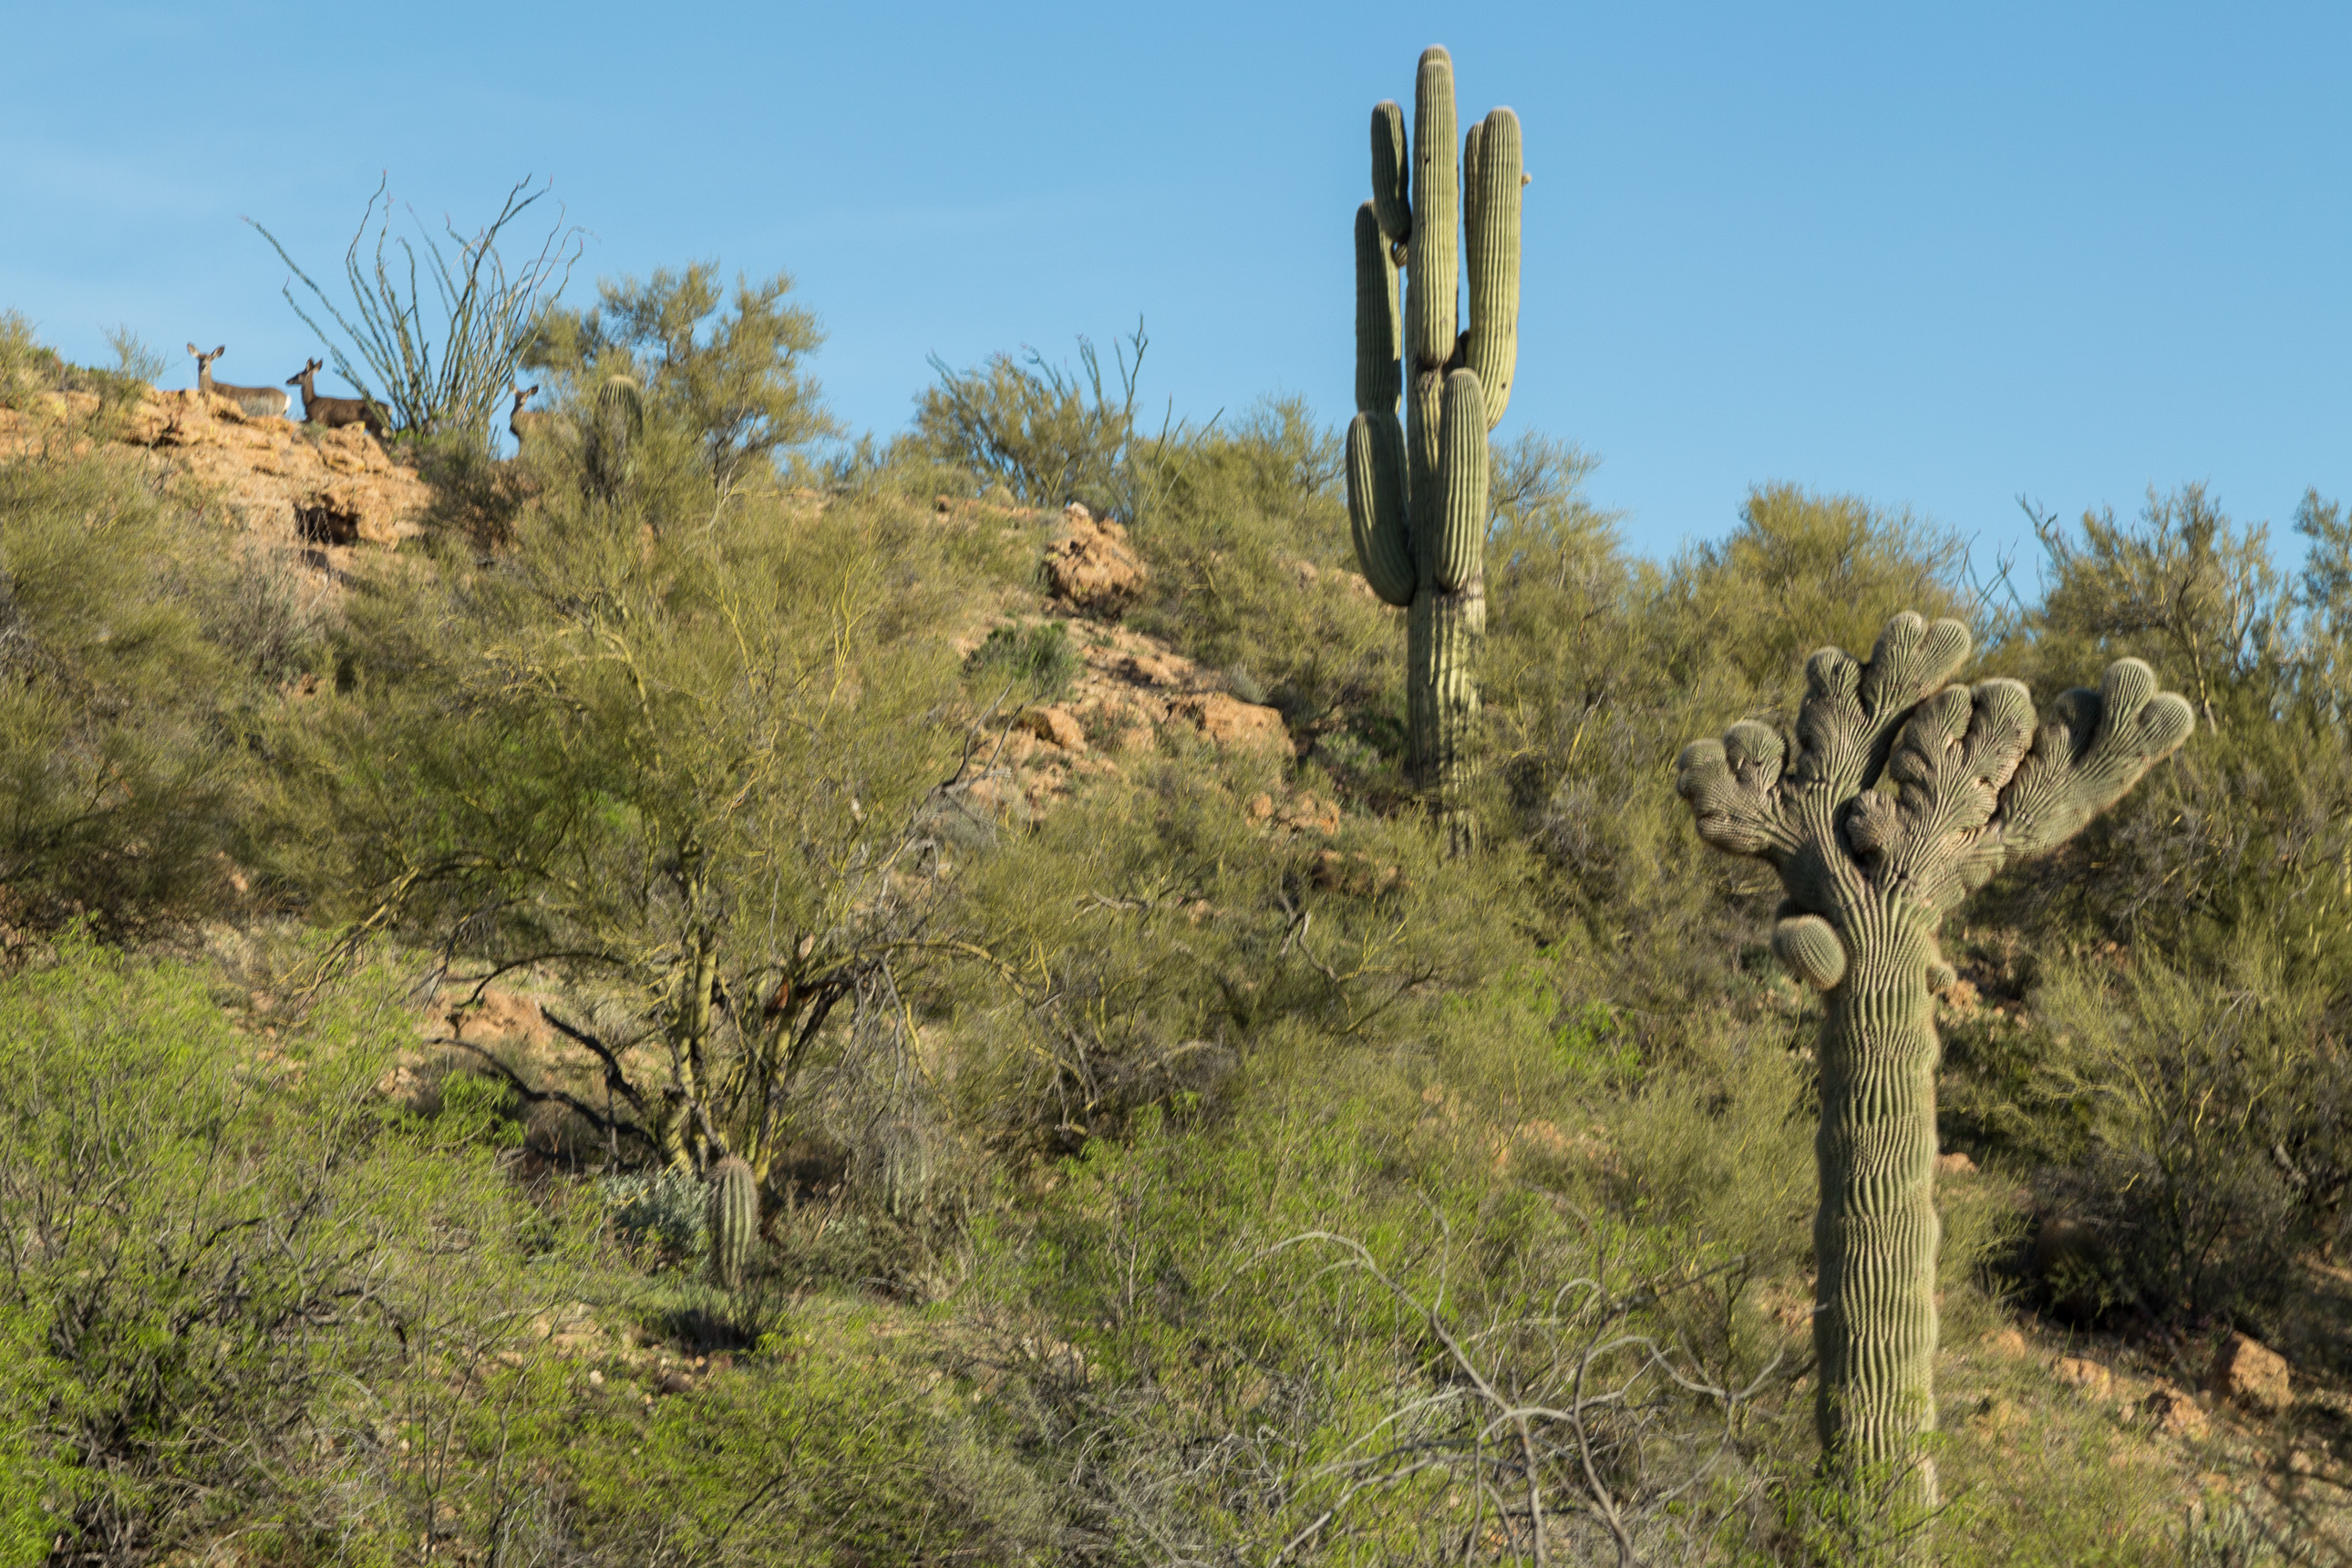 Mahalo the crested saguaro with some deer